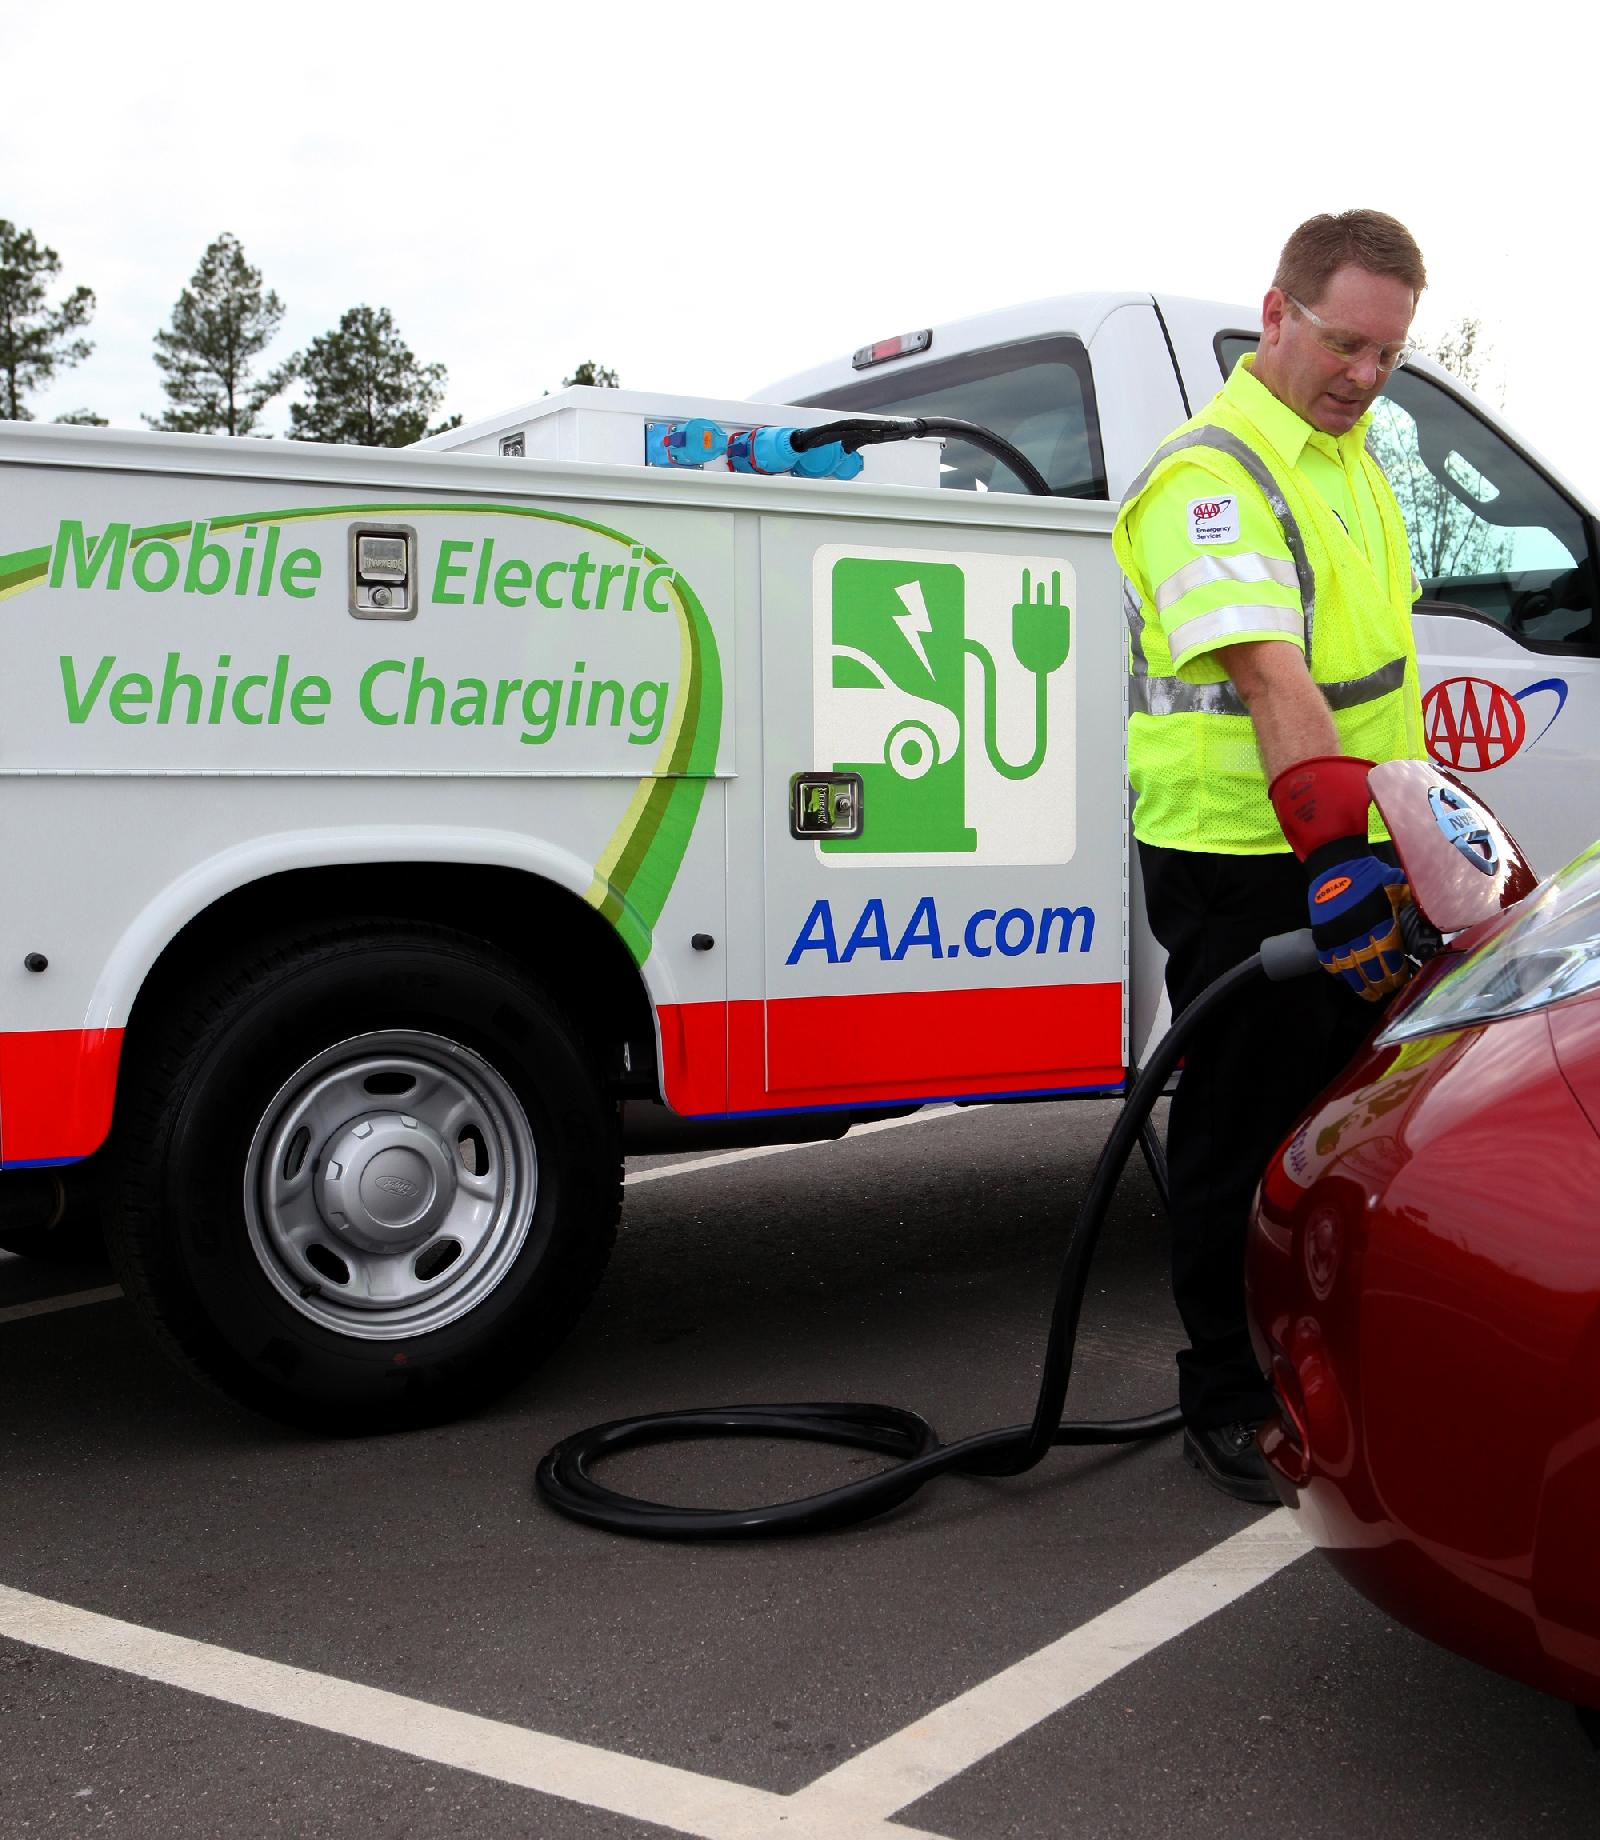 Aaa Car Service >> Your Electric Car Out Of Juice? AAA Tests Roadside Recharging